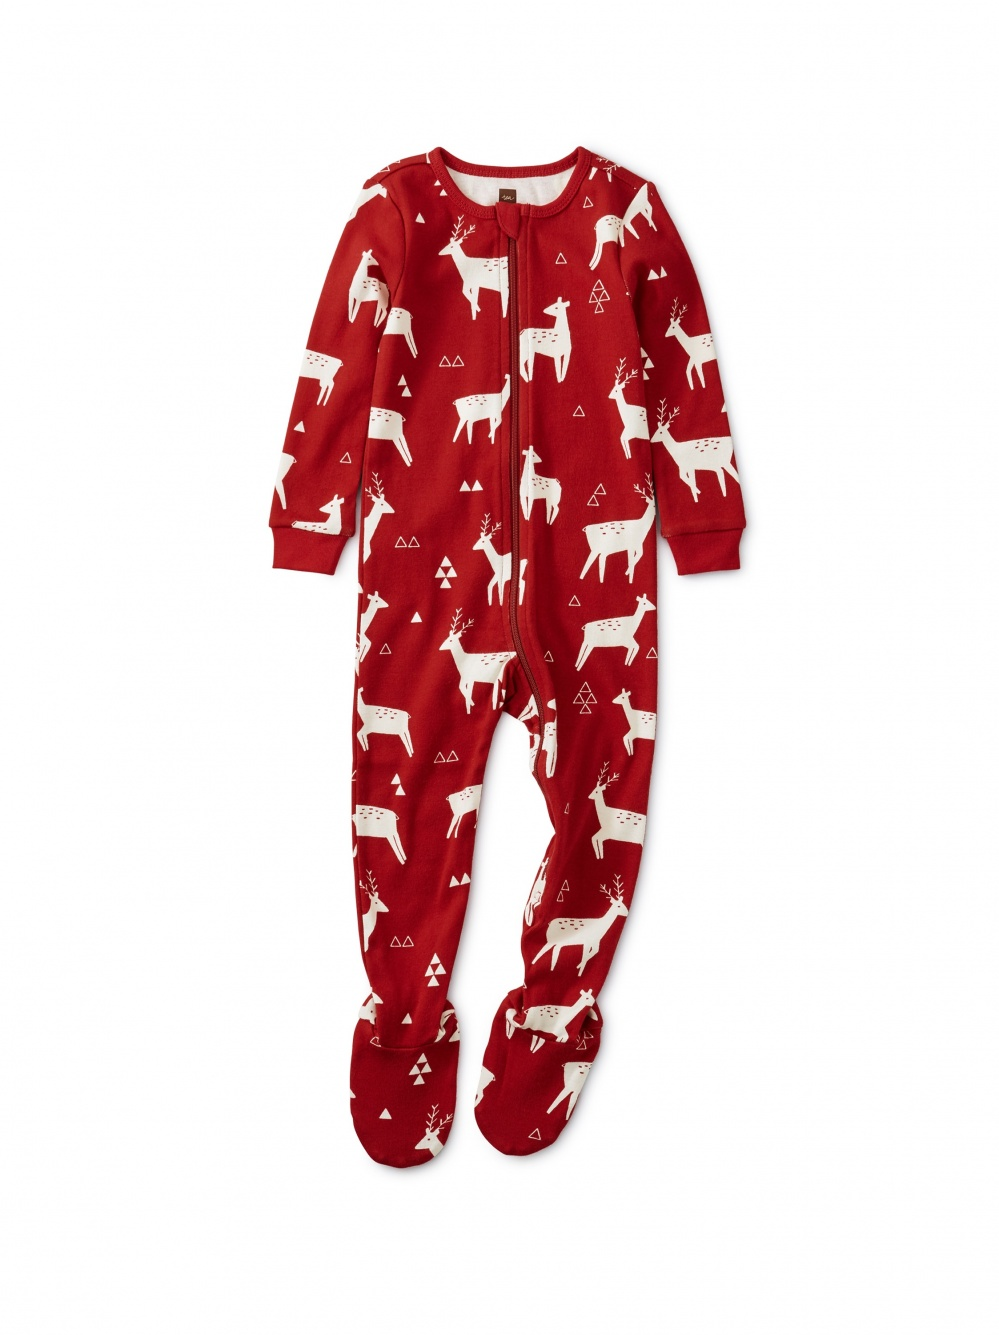 Patterned Footed Pajamas